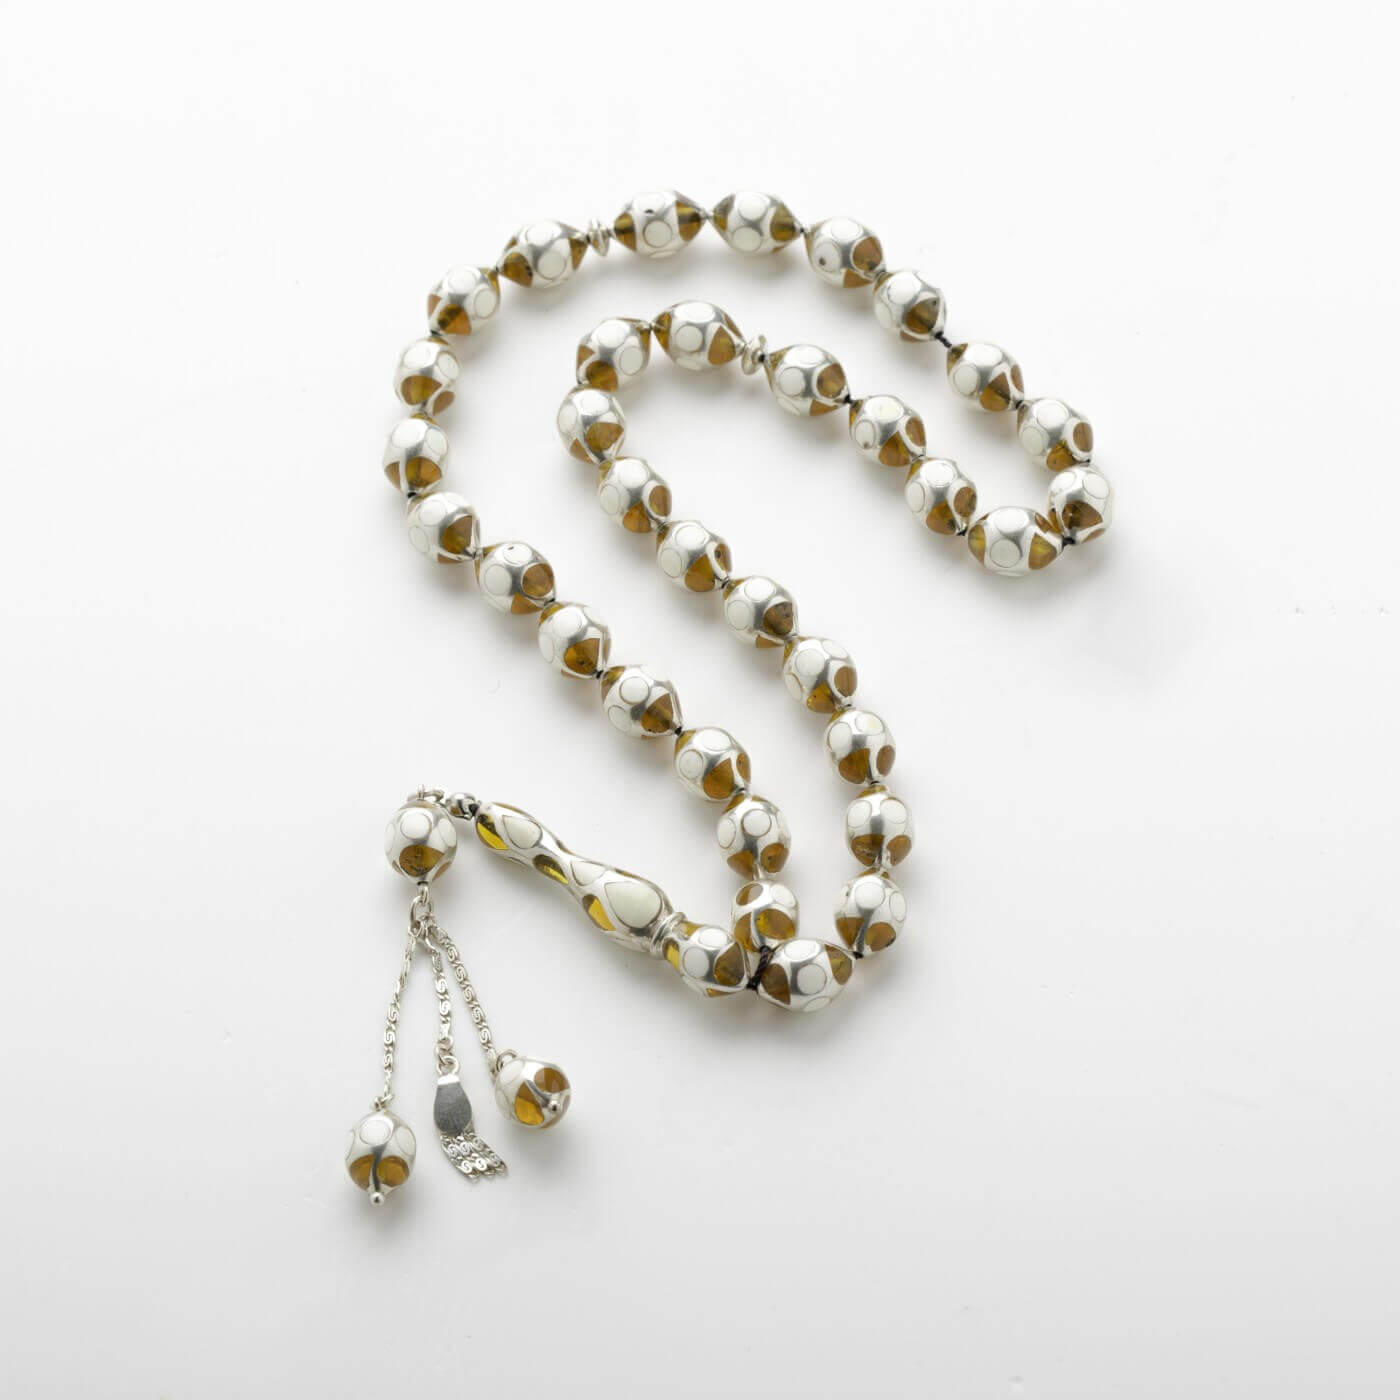 Ivory kahraman Prayer Beads with Silver2